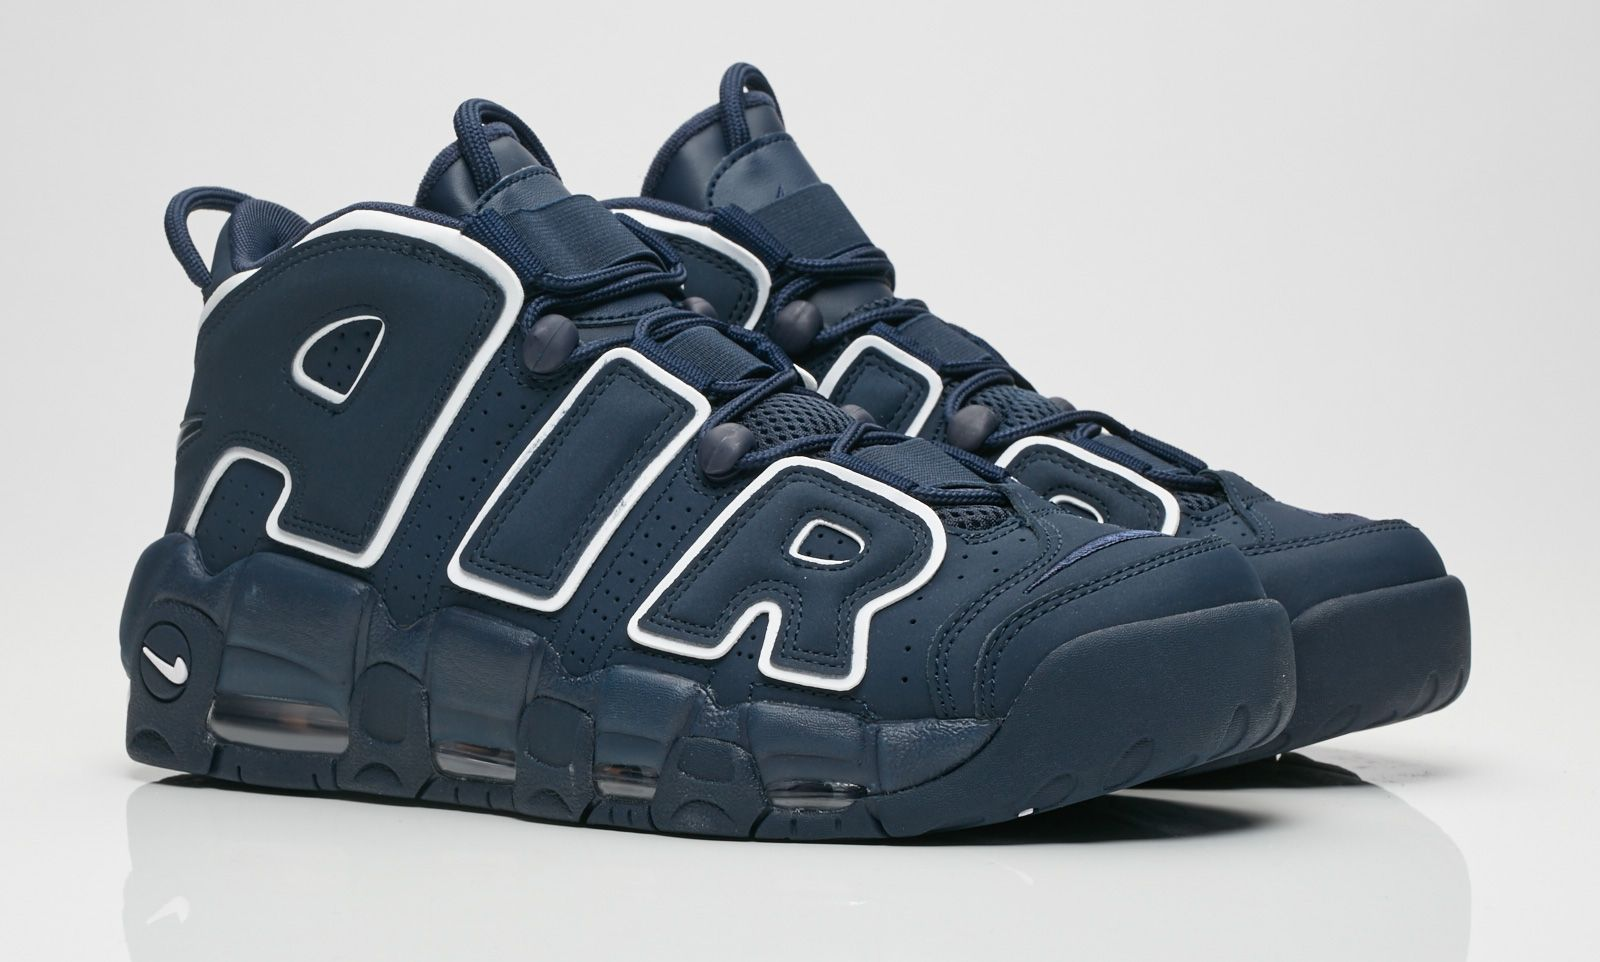 new style 3a3a4 ab5bd Look Out For The Nike Air More Uptempo Obsidian (Volcanic)